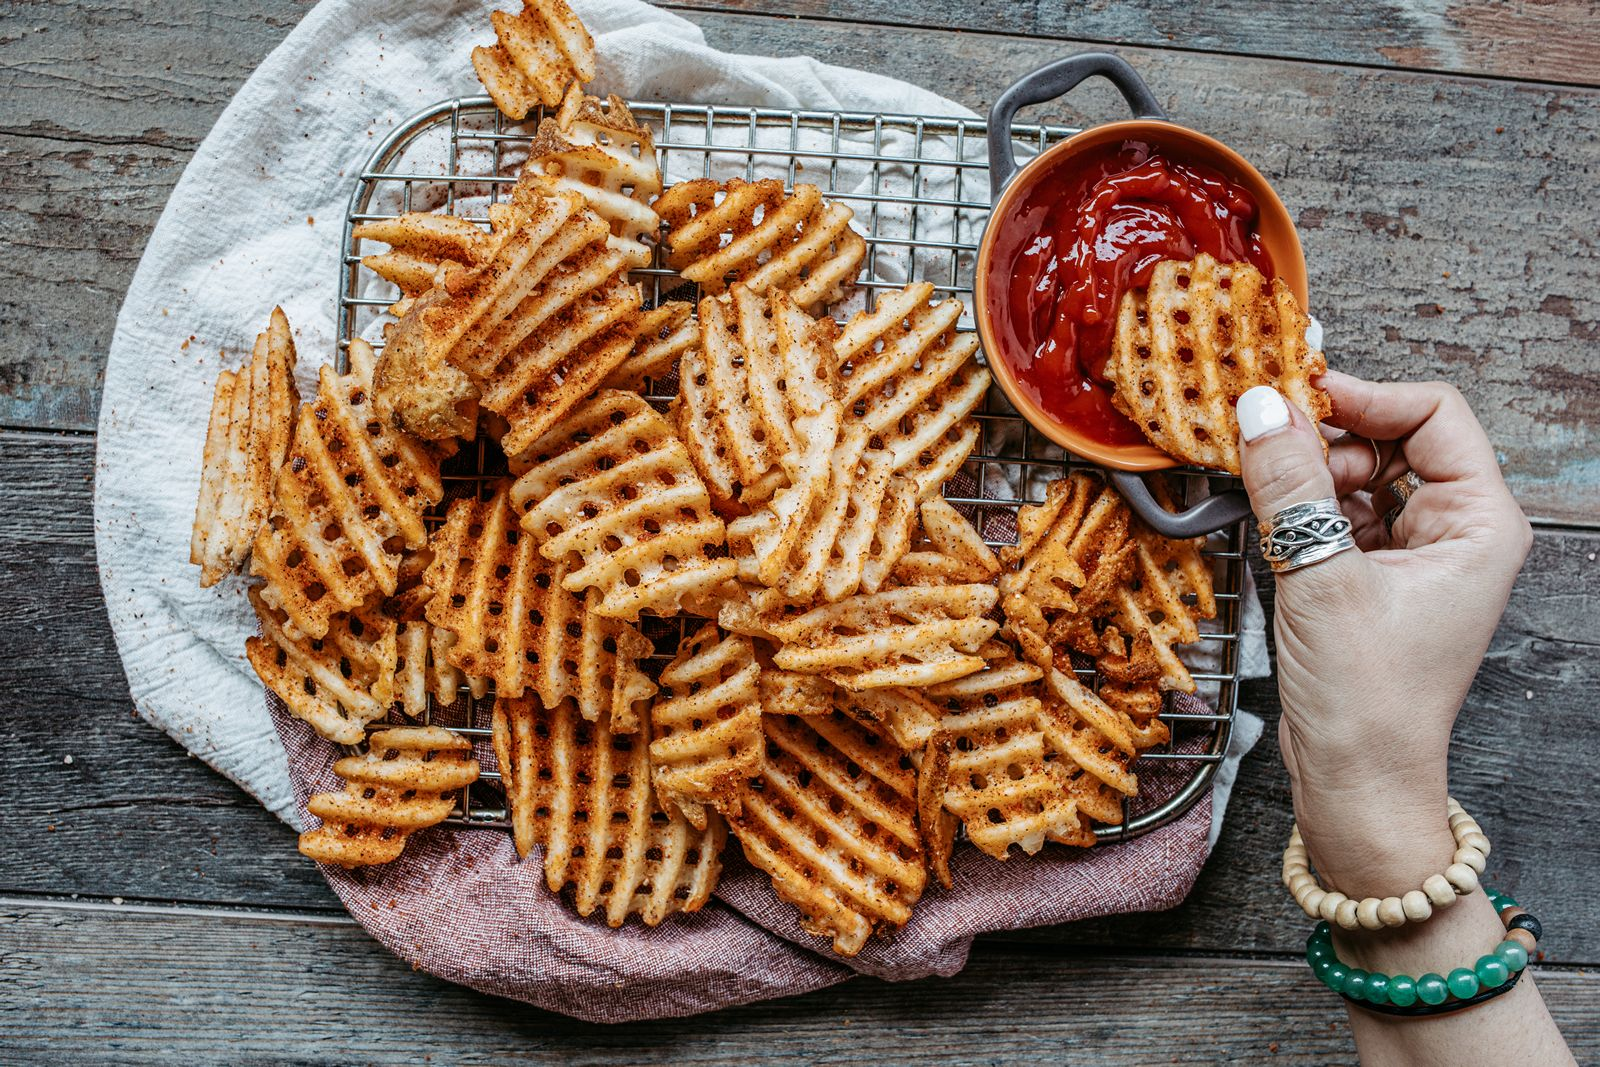 Celebrate Summer The Roadhouse Way with Logan's New Waffle Fries